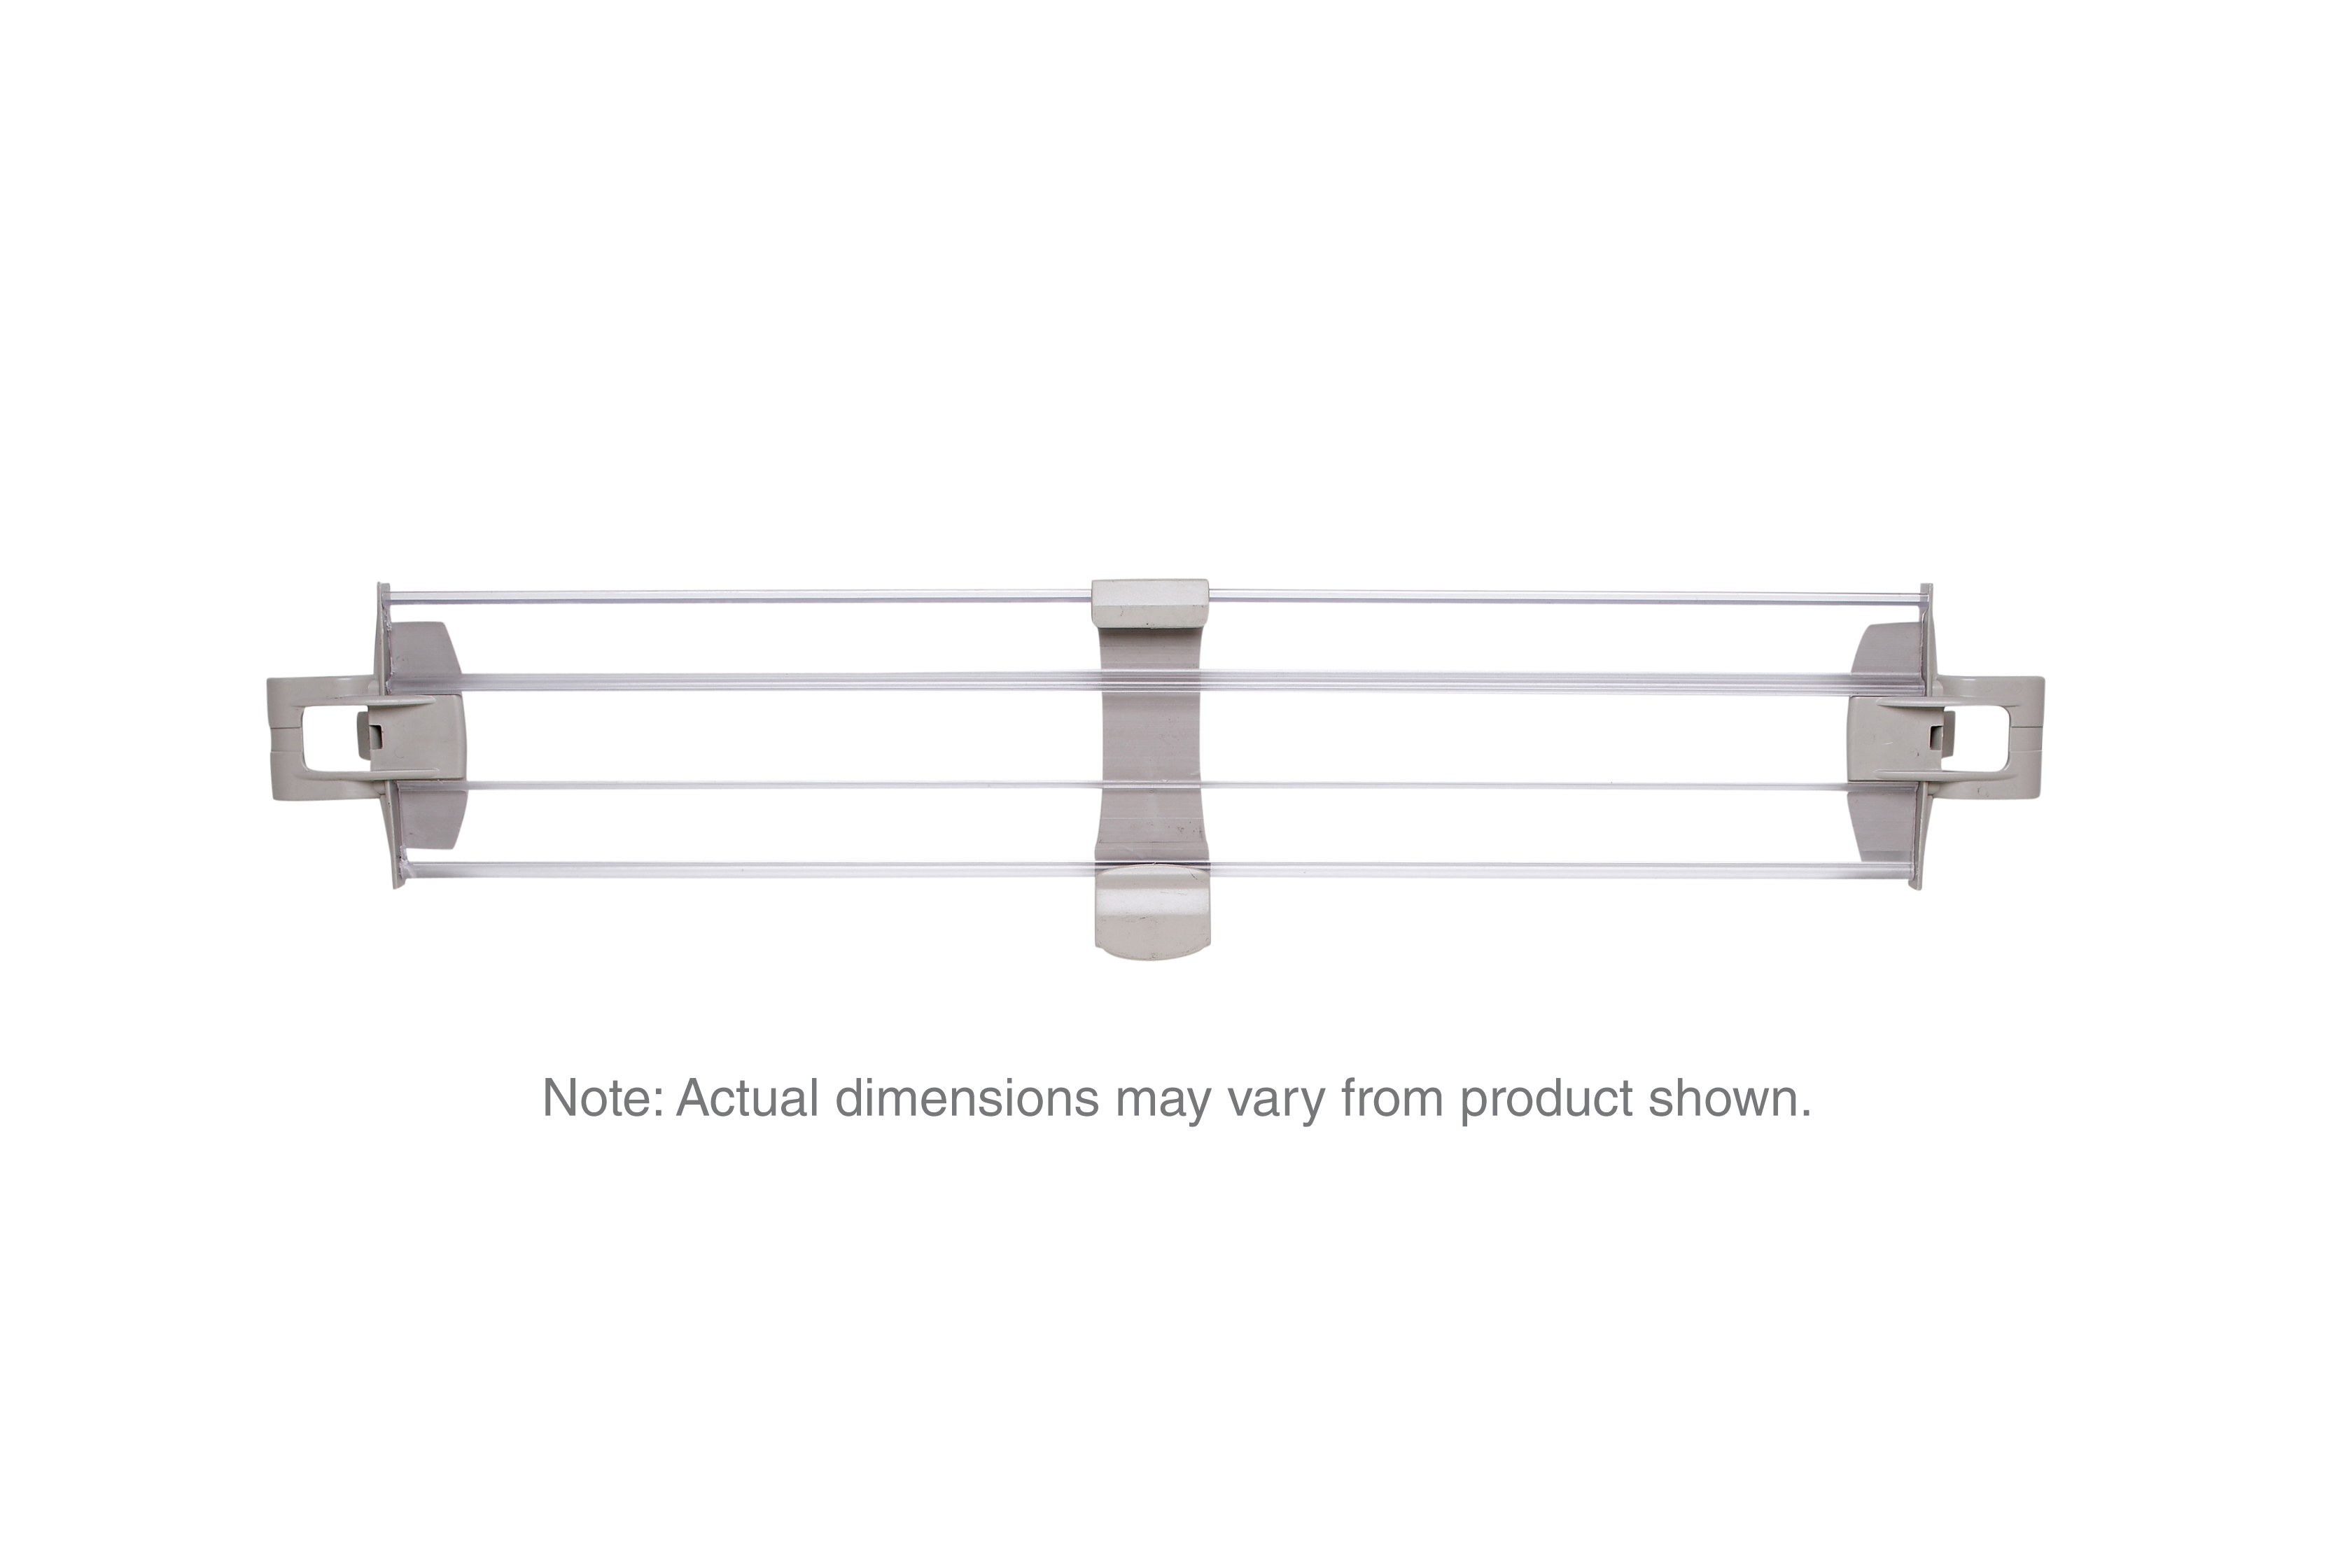 Max4 2'' High Stackable Ledge for Shelf Length of 30